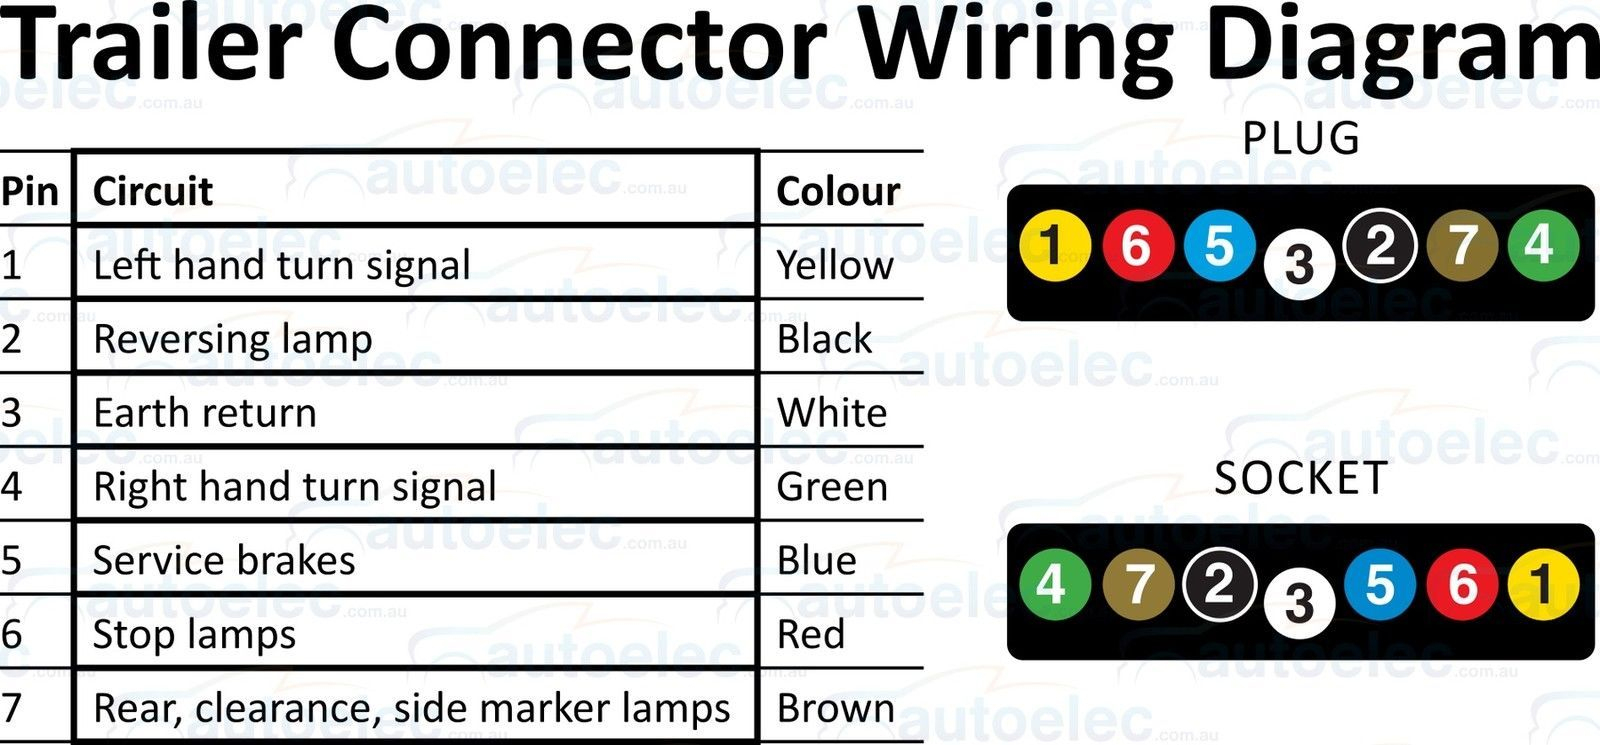 Wiring Diagram 7 Pin Female Plug | Manual E-Books - Female Trailer Plug Wiring Diagram